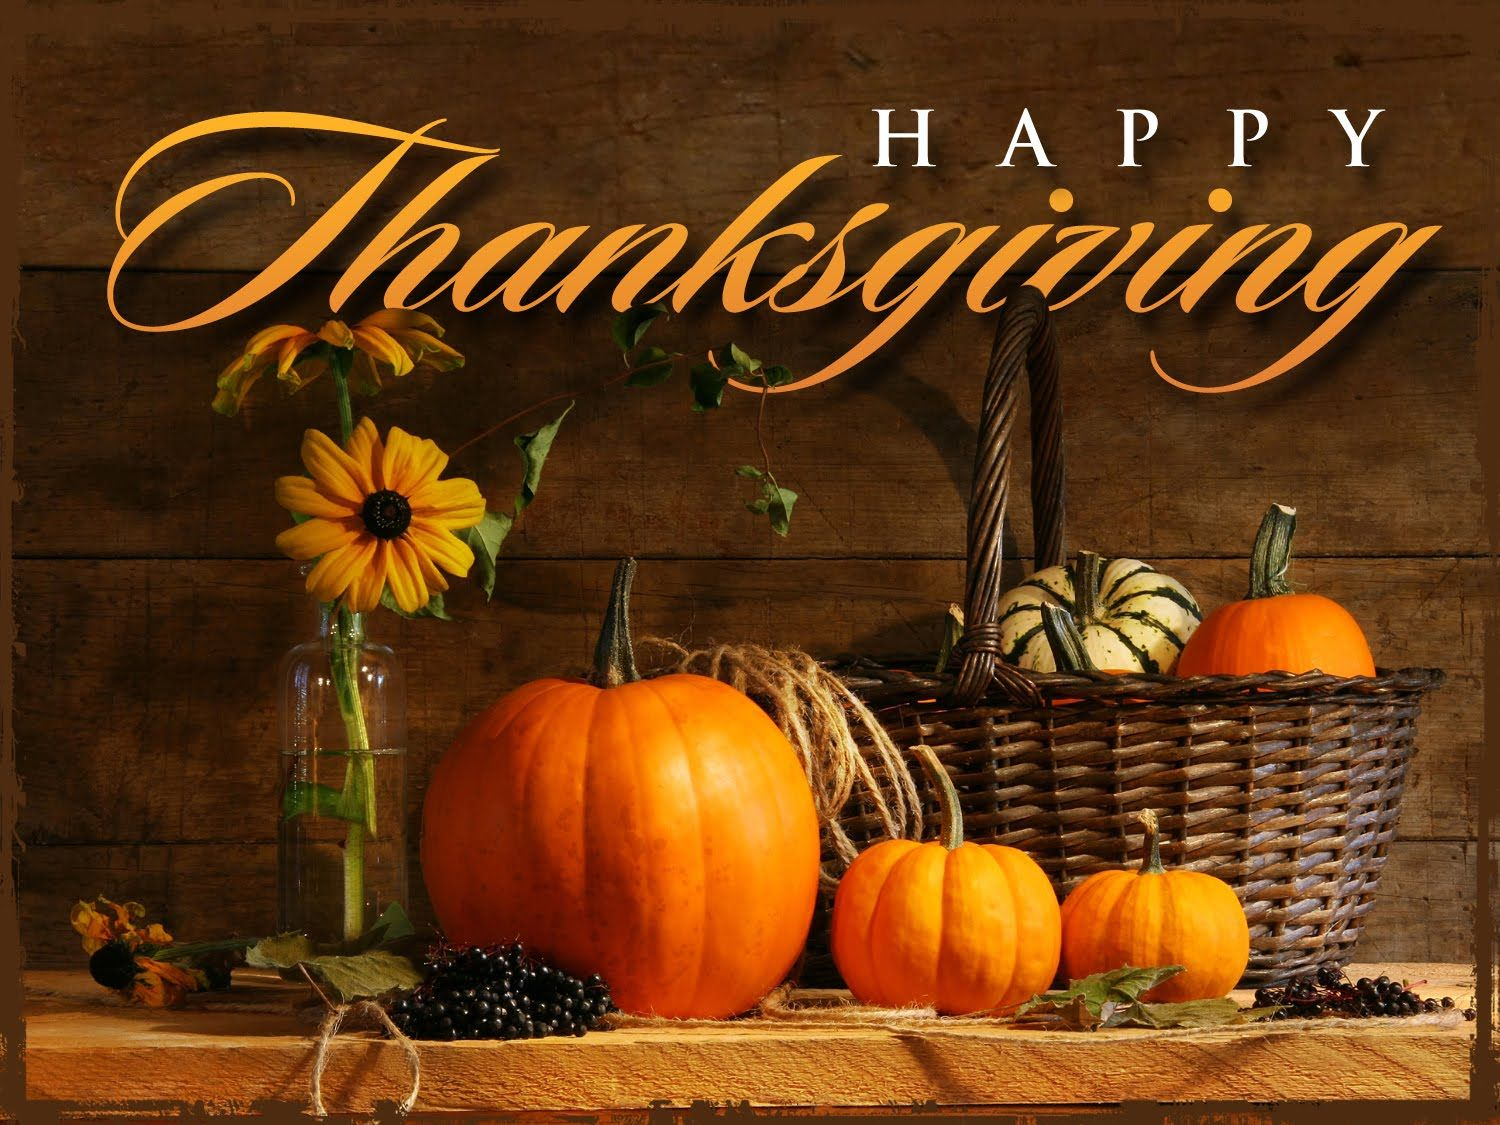 Expressing Thanks and Saying Happy Thanksgiving in Spanish